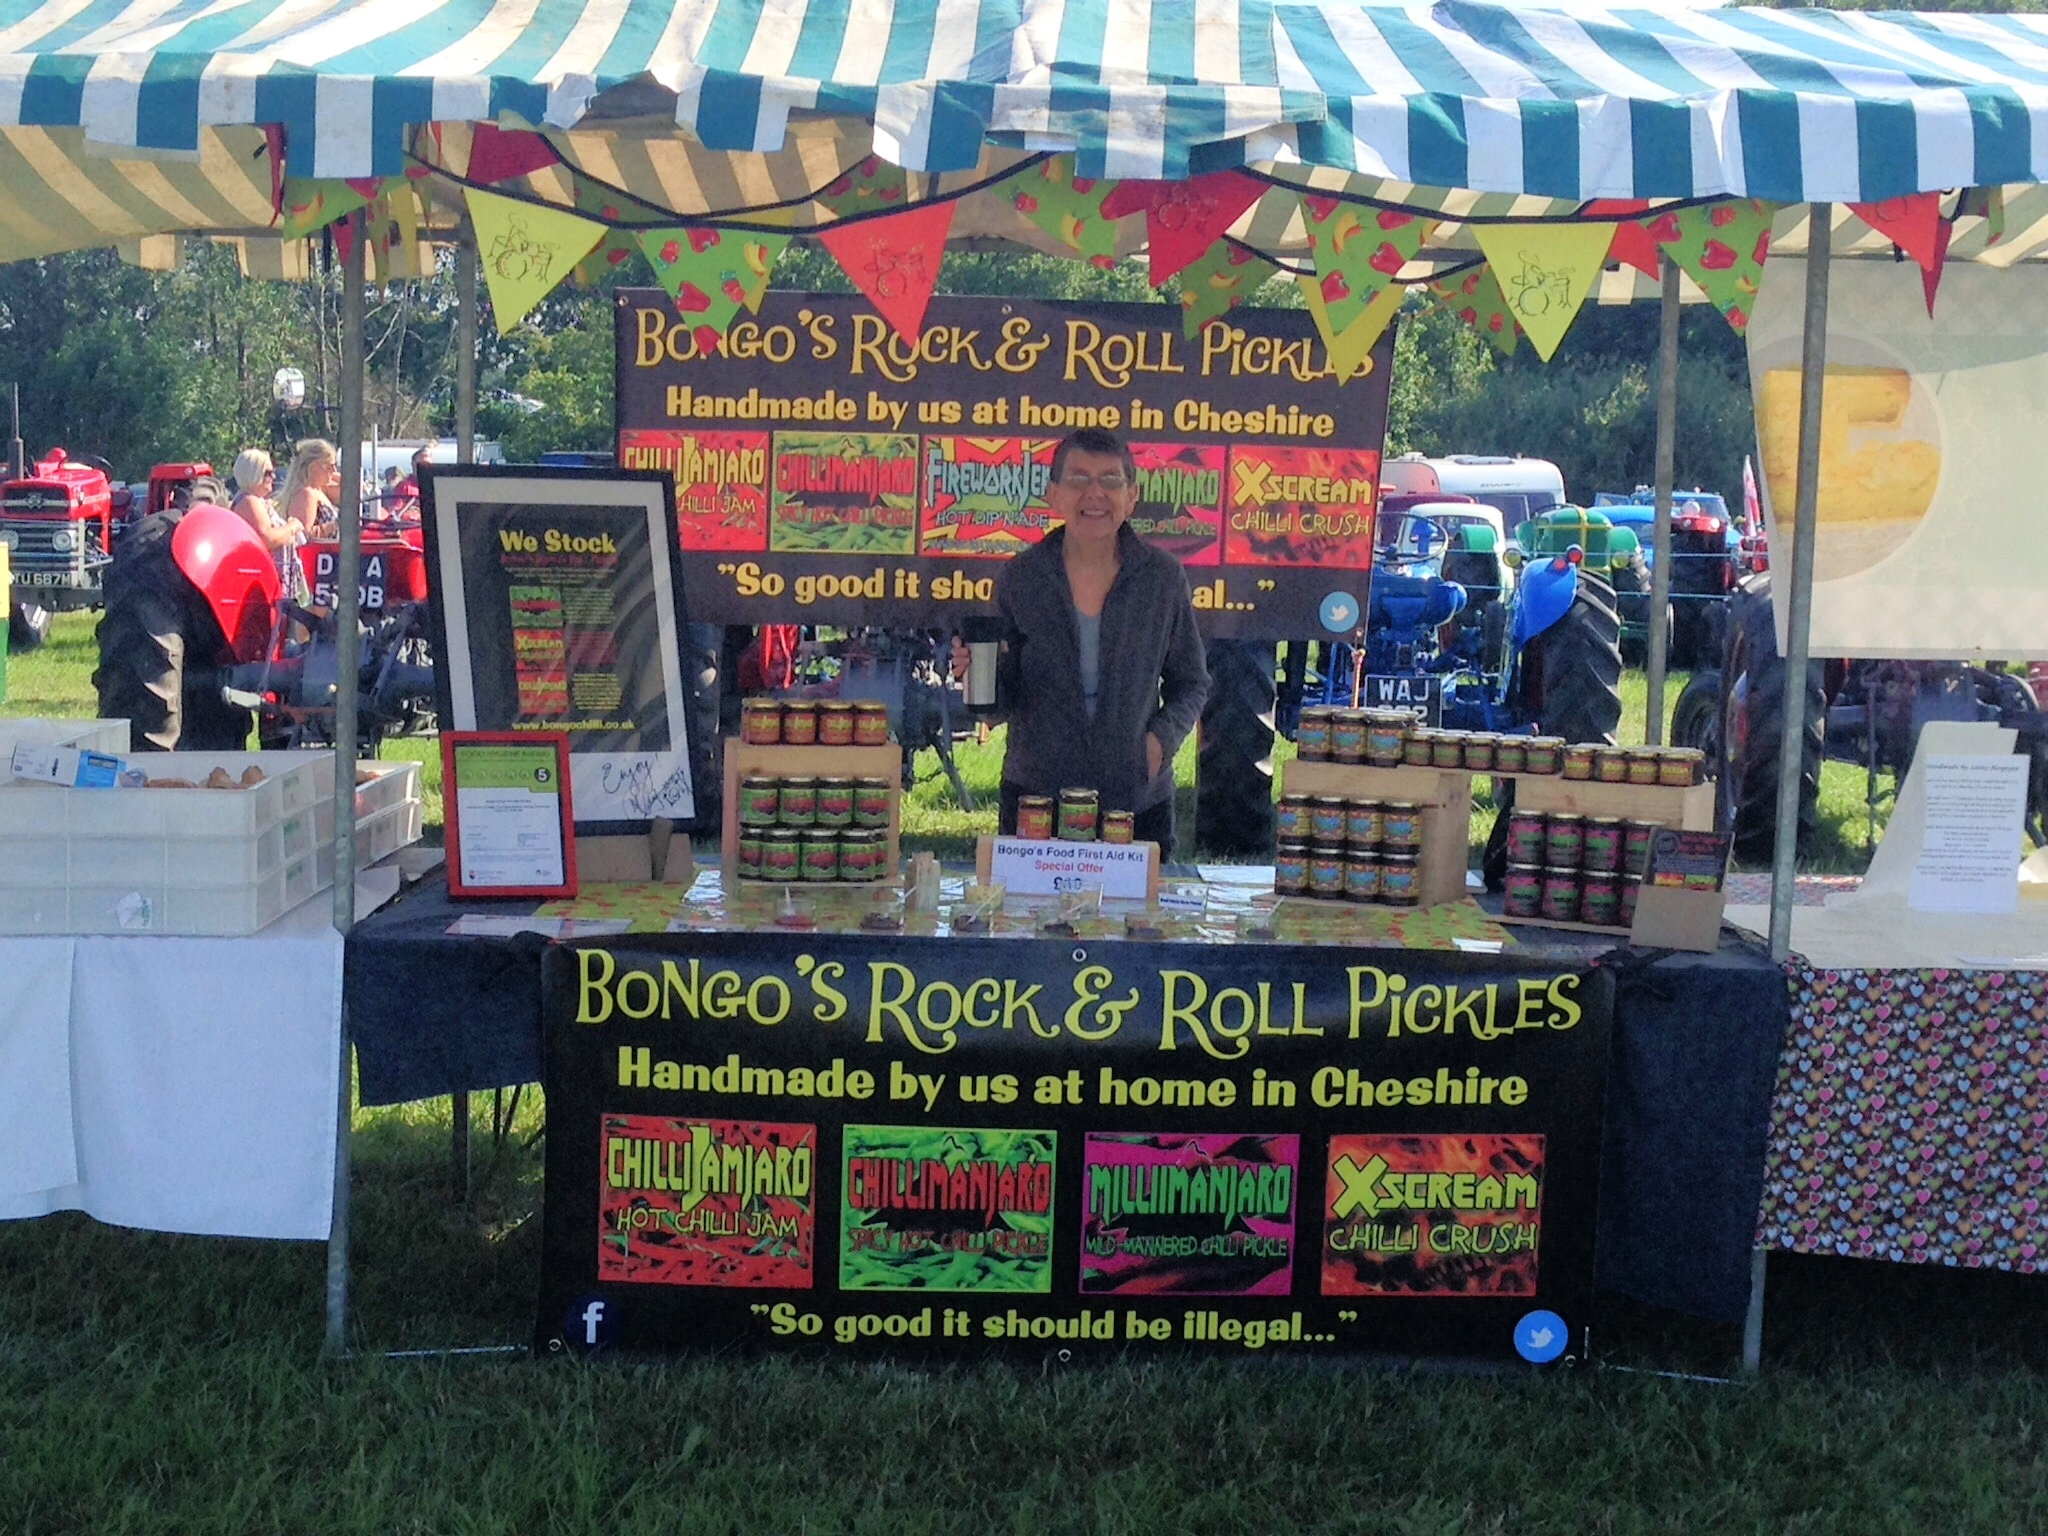 The stall looked great! Well done Momma Bongo!